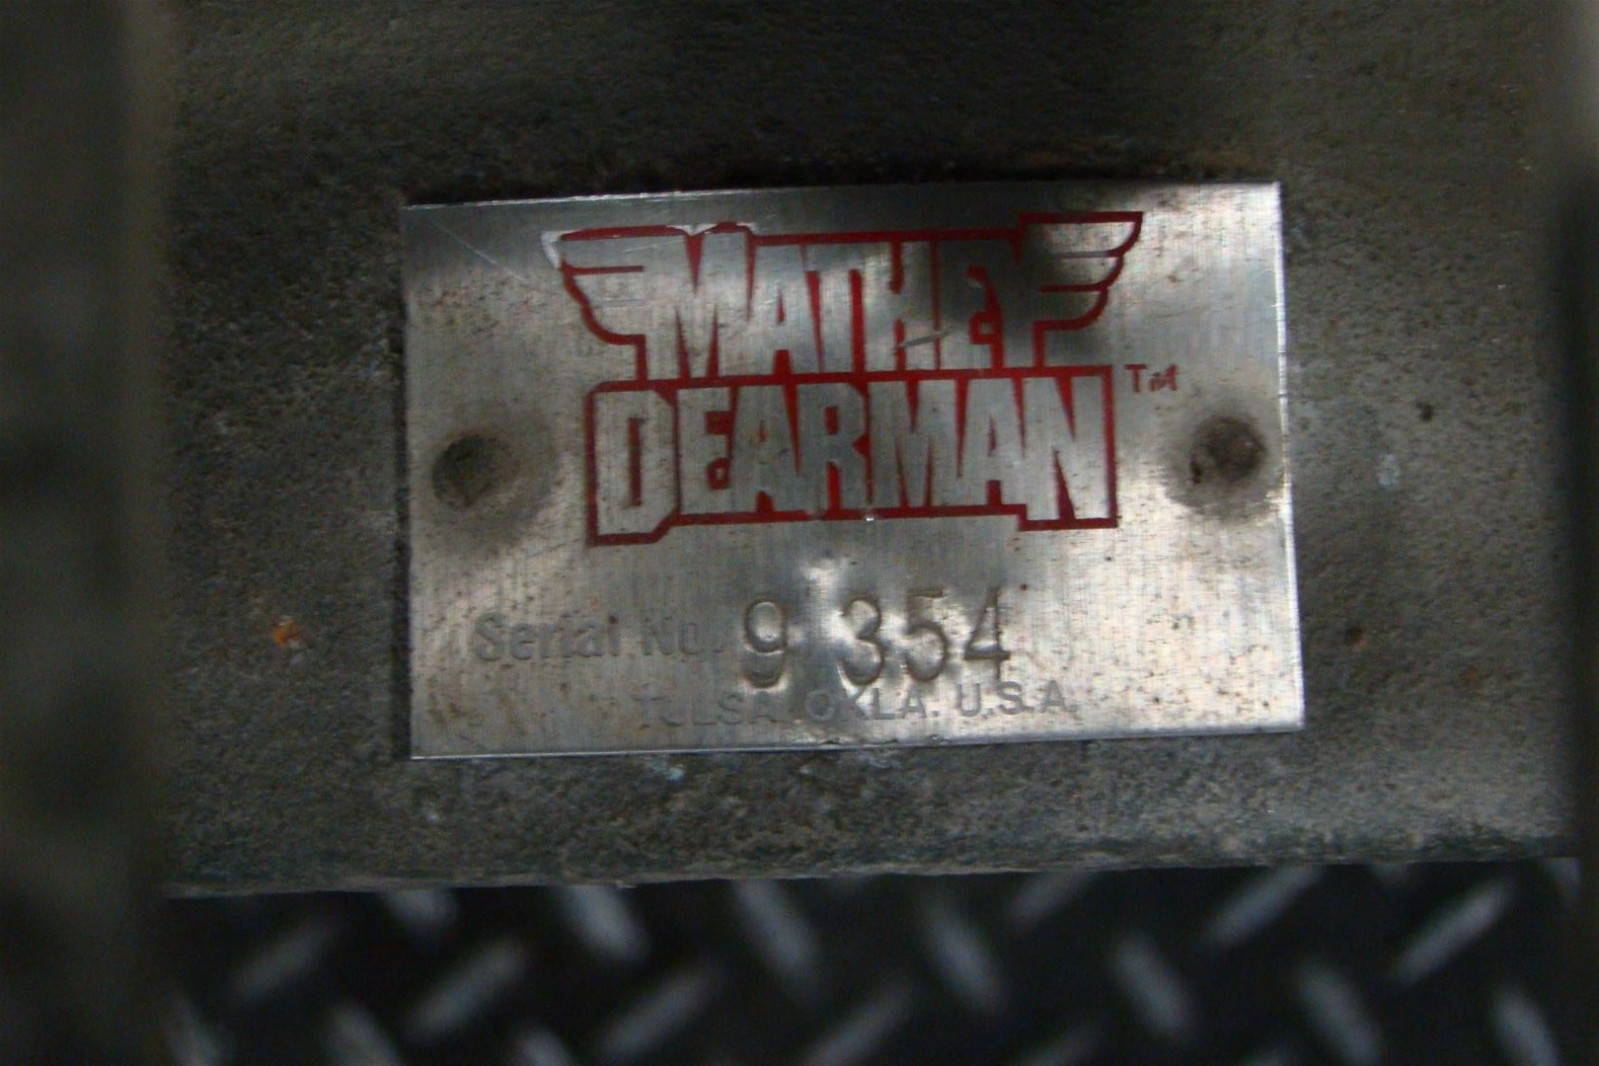 mathey dearman 12 beveling machine